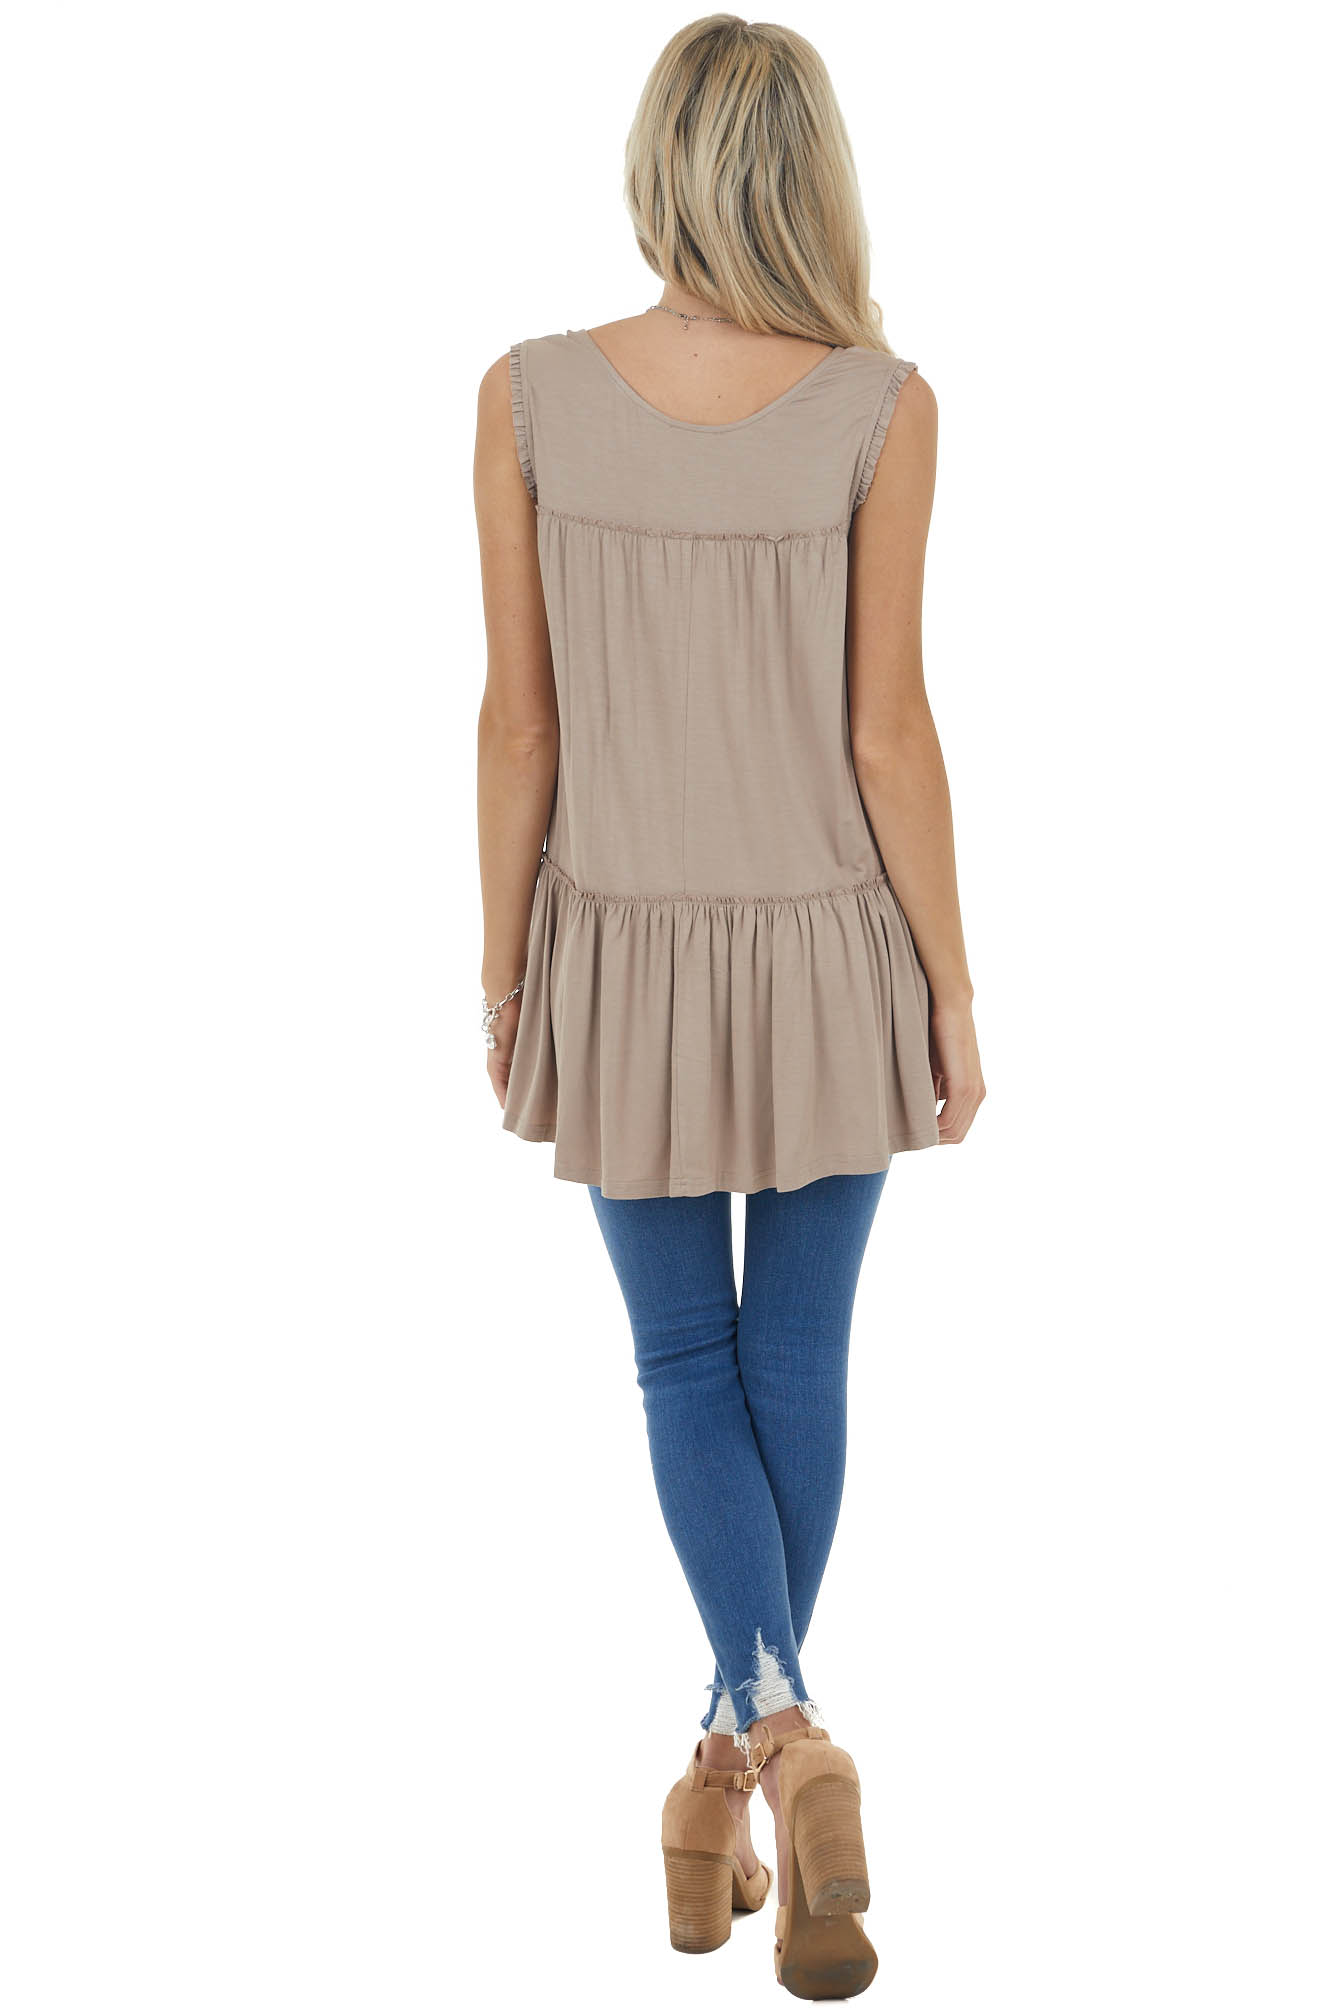 Dark Latte Sleeveless Tunic Knit Top with Frill Details